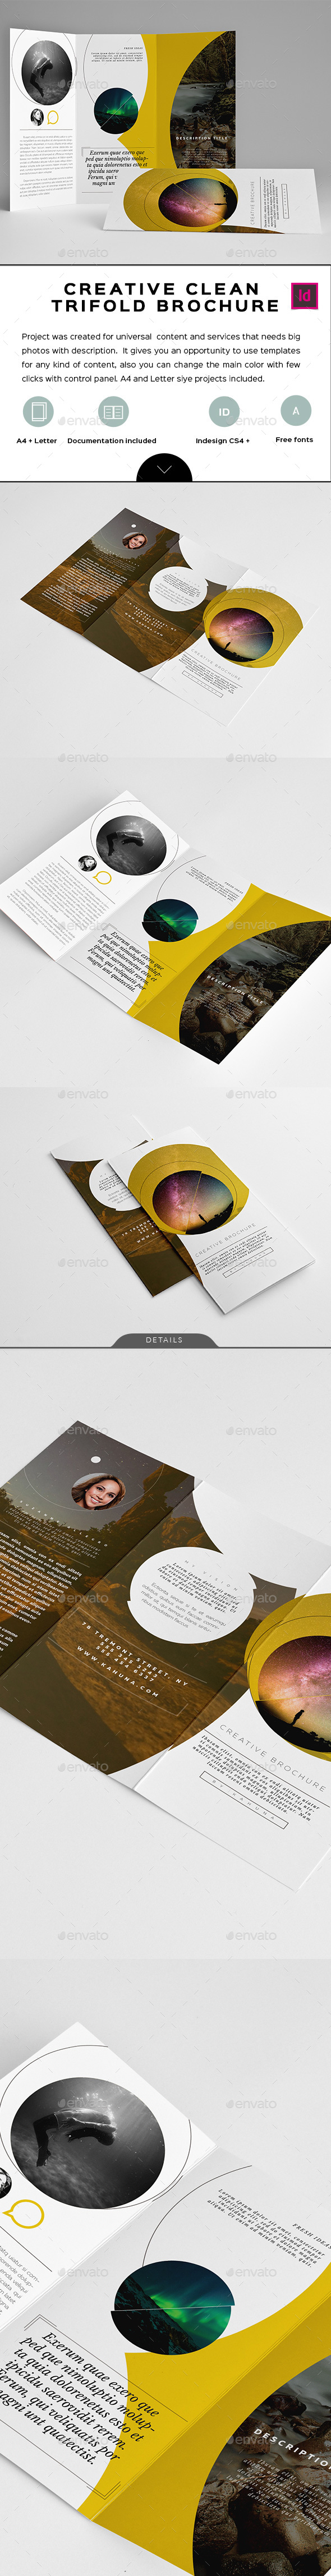 Creative Clean Trifold Brochure - Informational Brochures